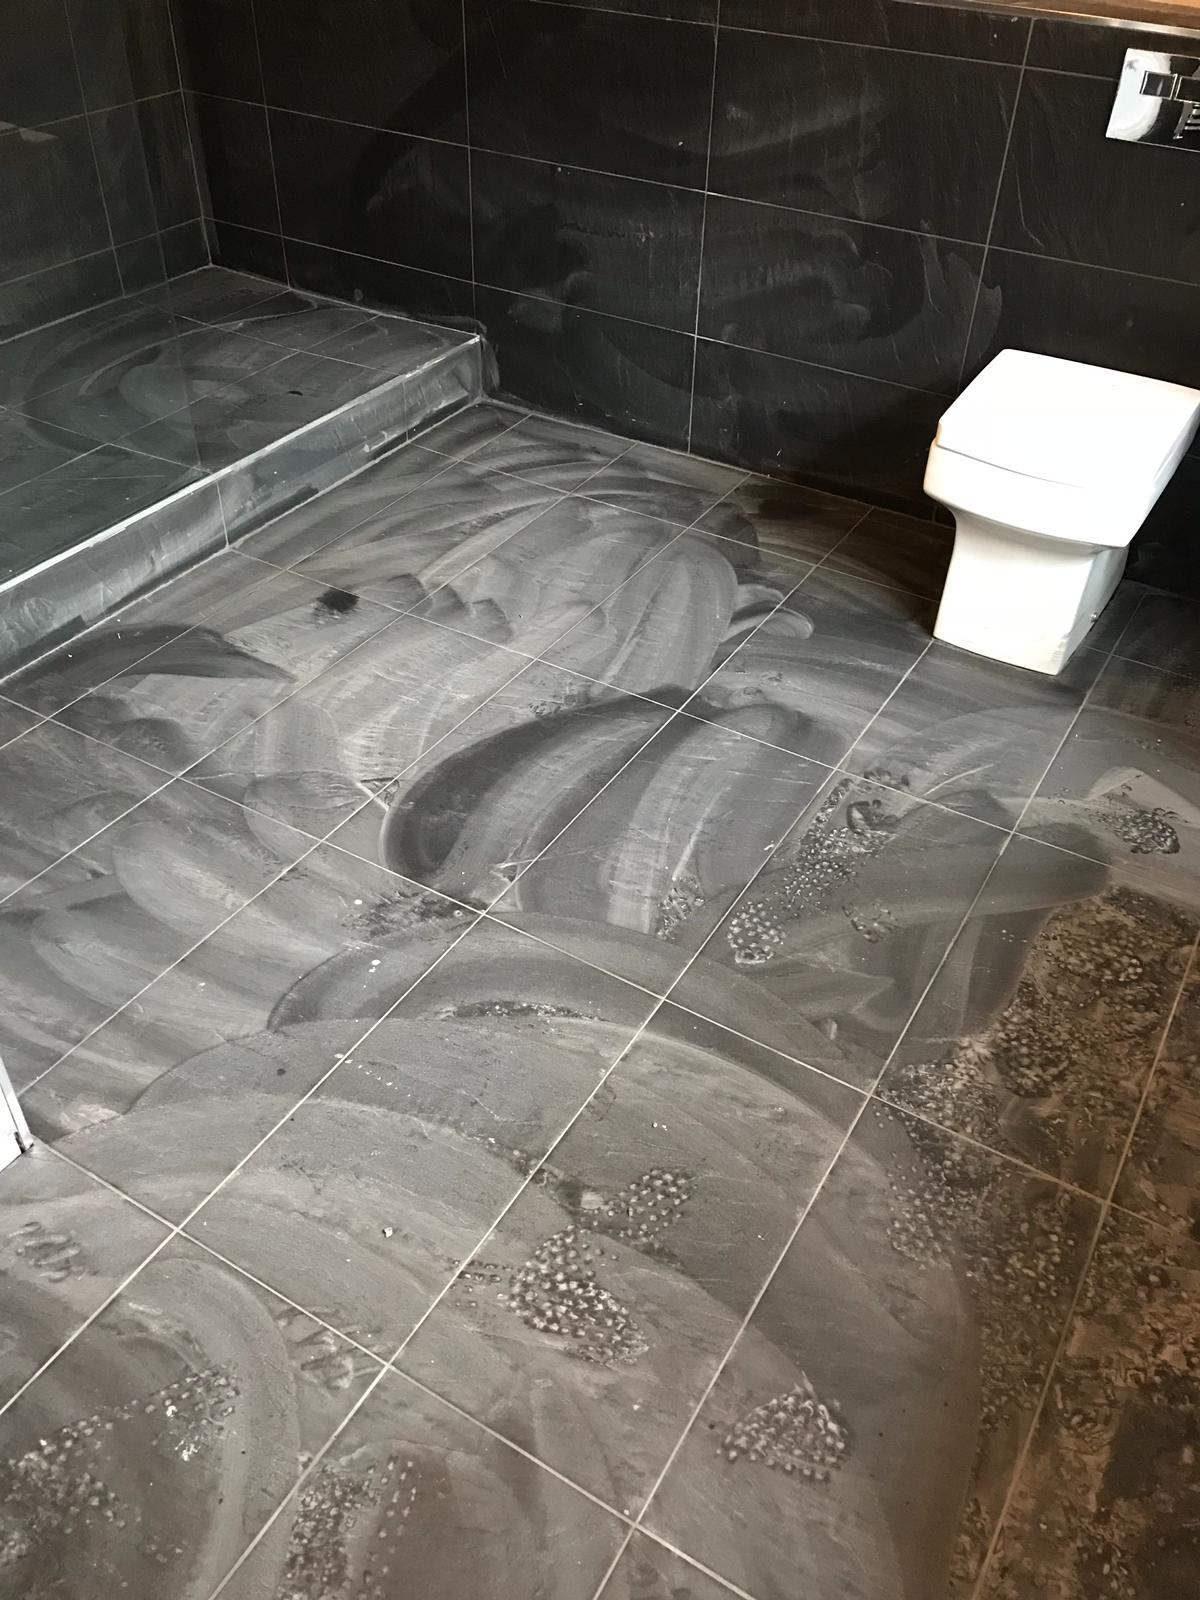 Porcelain Tile Cleaning and Maintenance – Cleaning and Maintenance